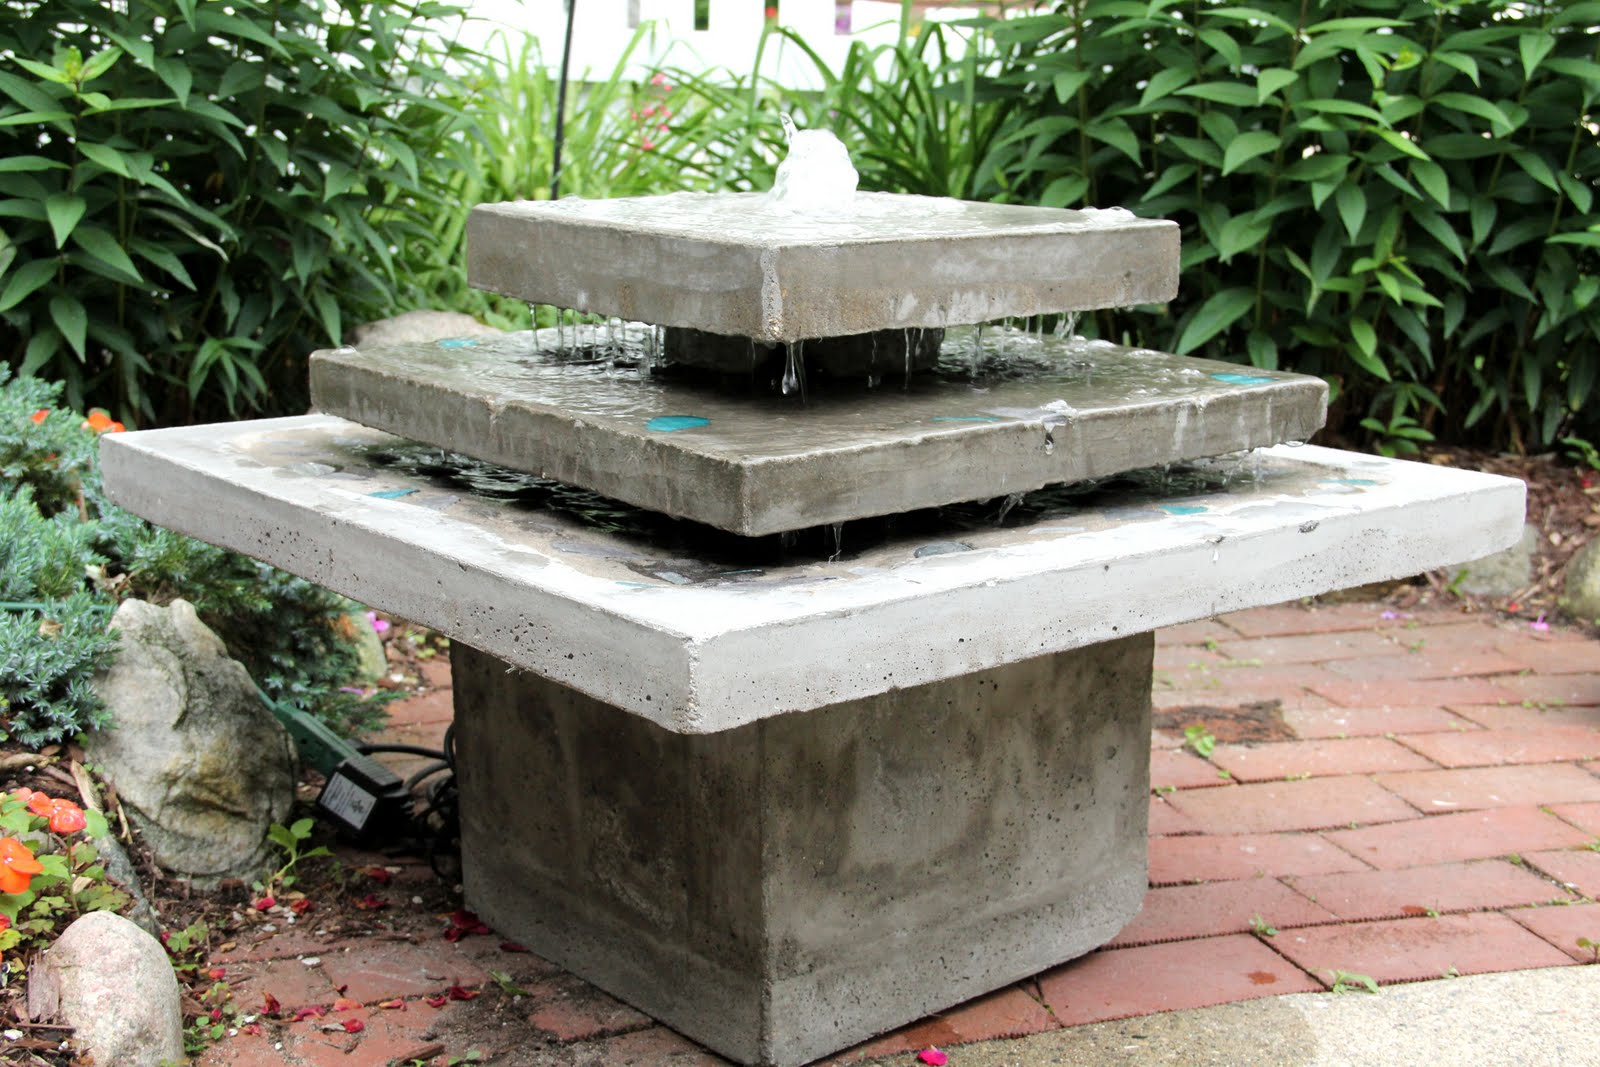 Introducing My Three Layer Concrete Fountain!